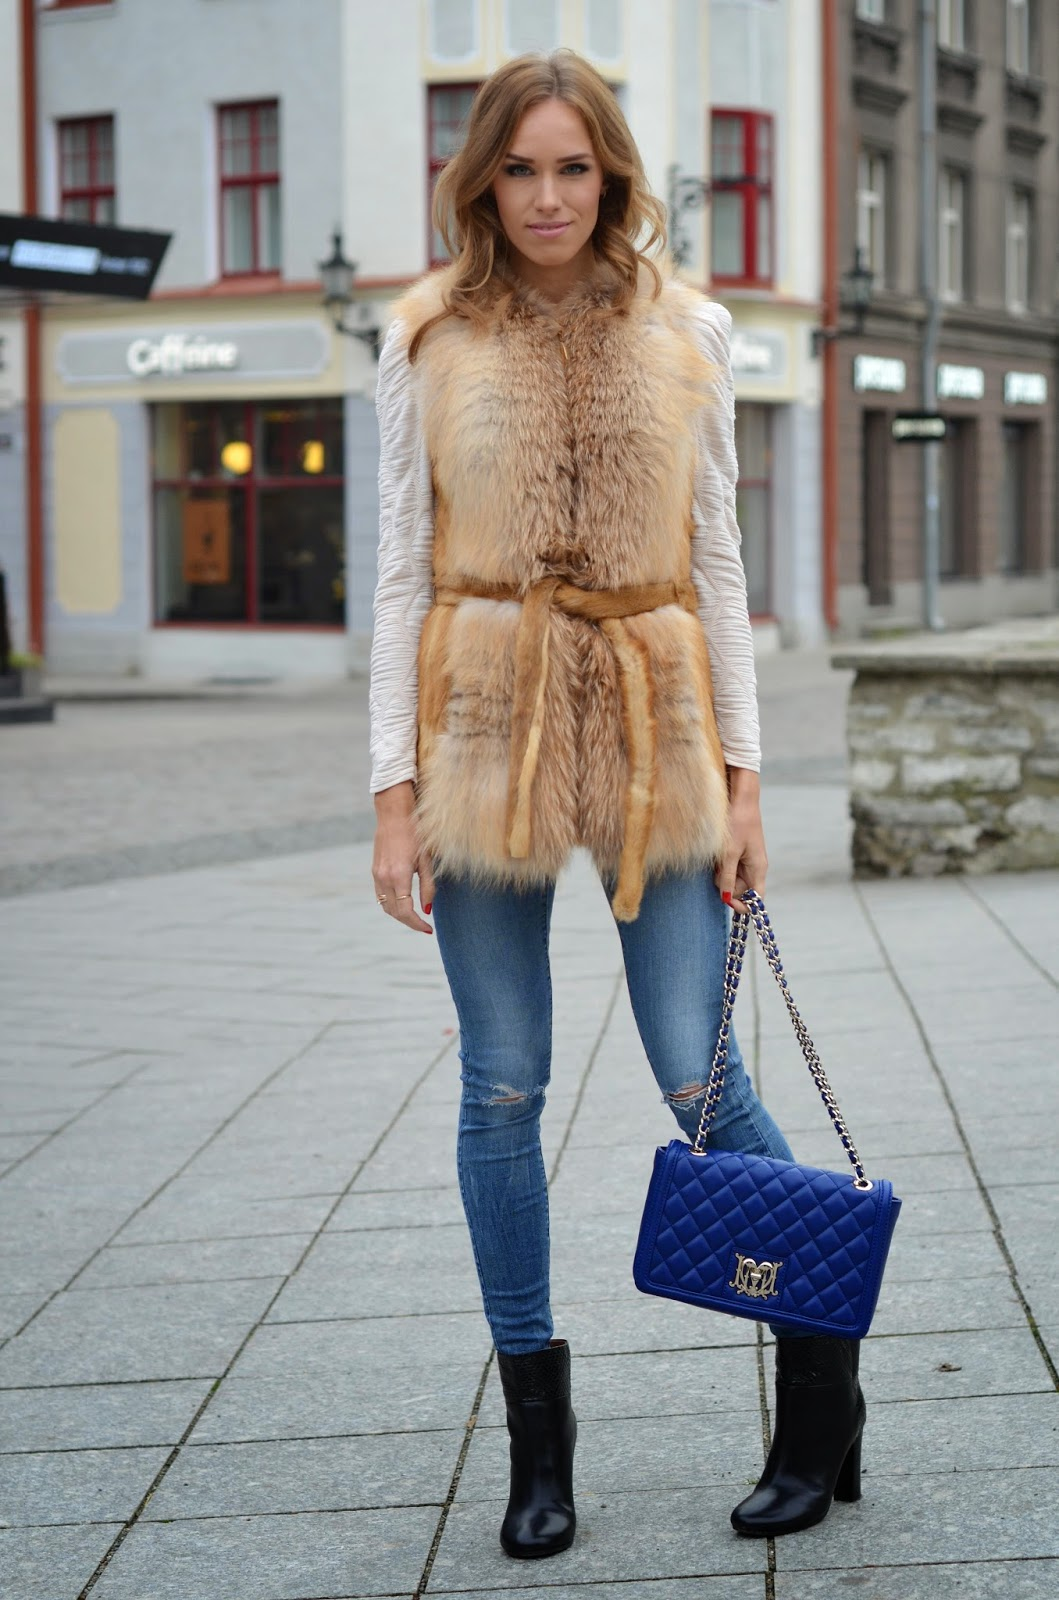 luxury-fashion-outfit-fur-vest-moschino-bag-chloe-boots  kristjaana mere